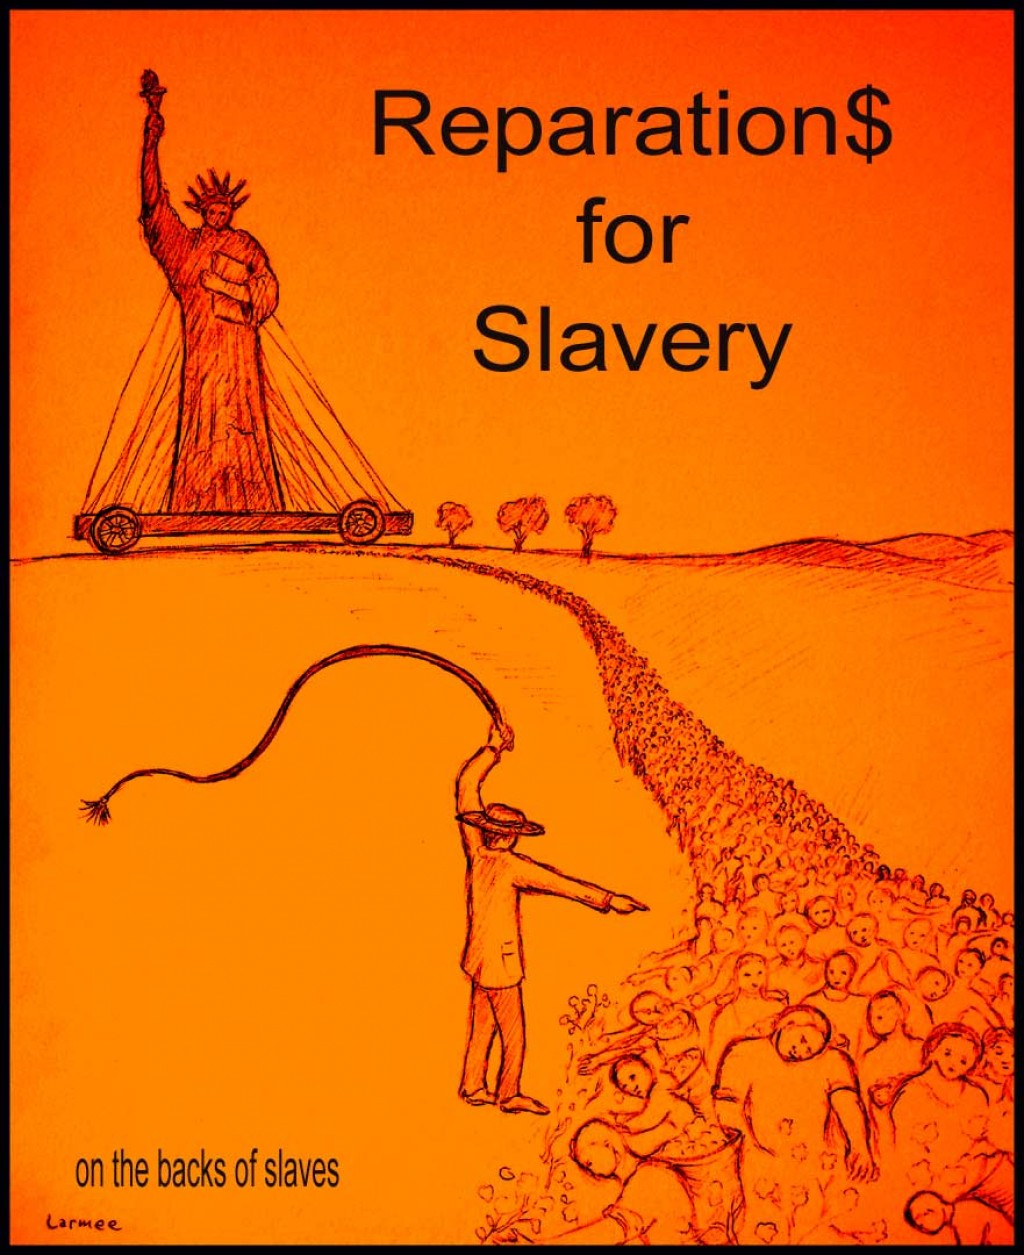 the issues of slave reparations Extracted from a paper titled the ethics of reparations: engaging the holocaust of enslavement, at  in consideration of the issue of reparations as essentially and foremost an ethical issue, it must  of course, the apology can't be for slave trade, or simply slavery it must be an apology for committing holocaust moreover, the.